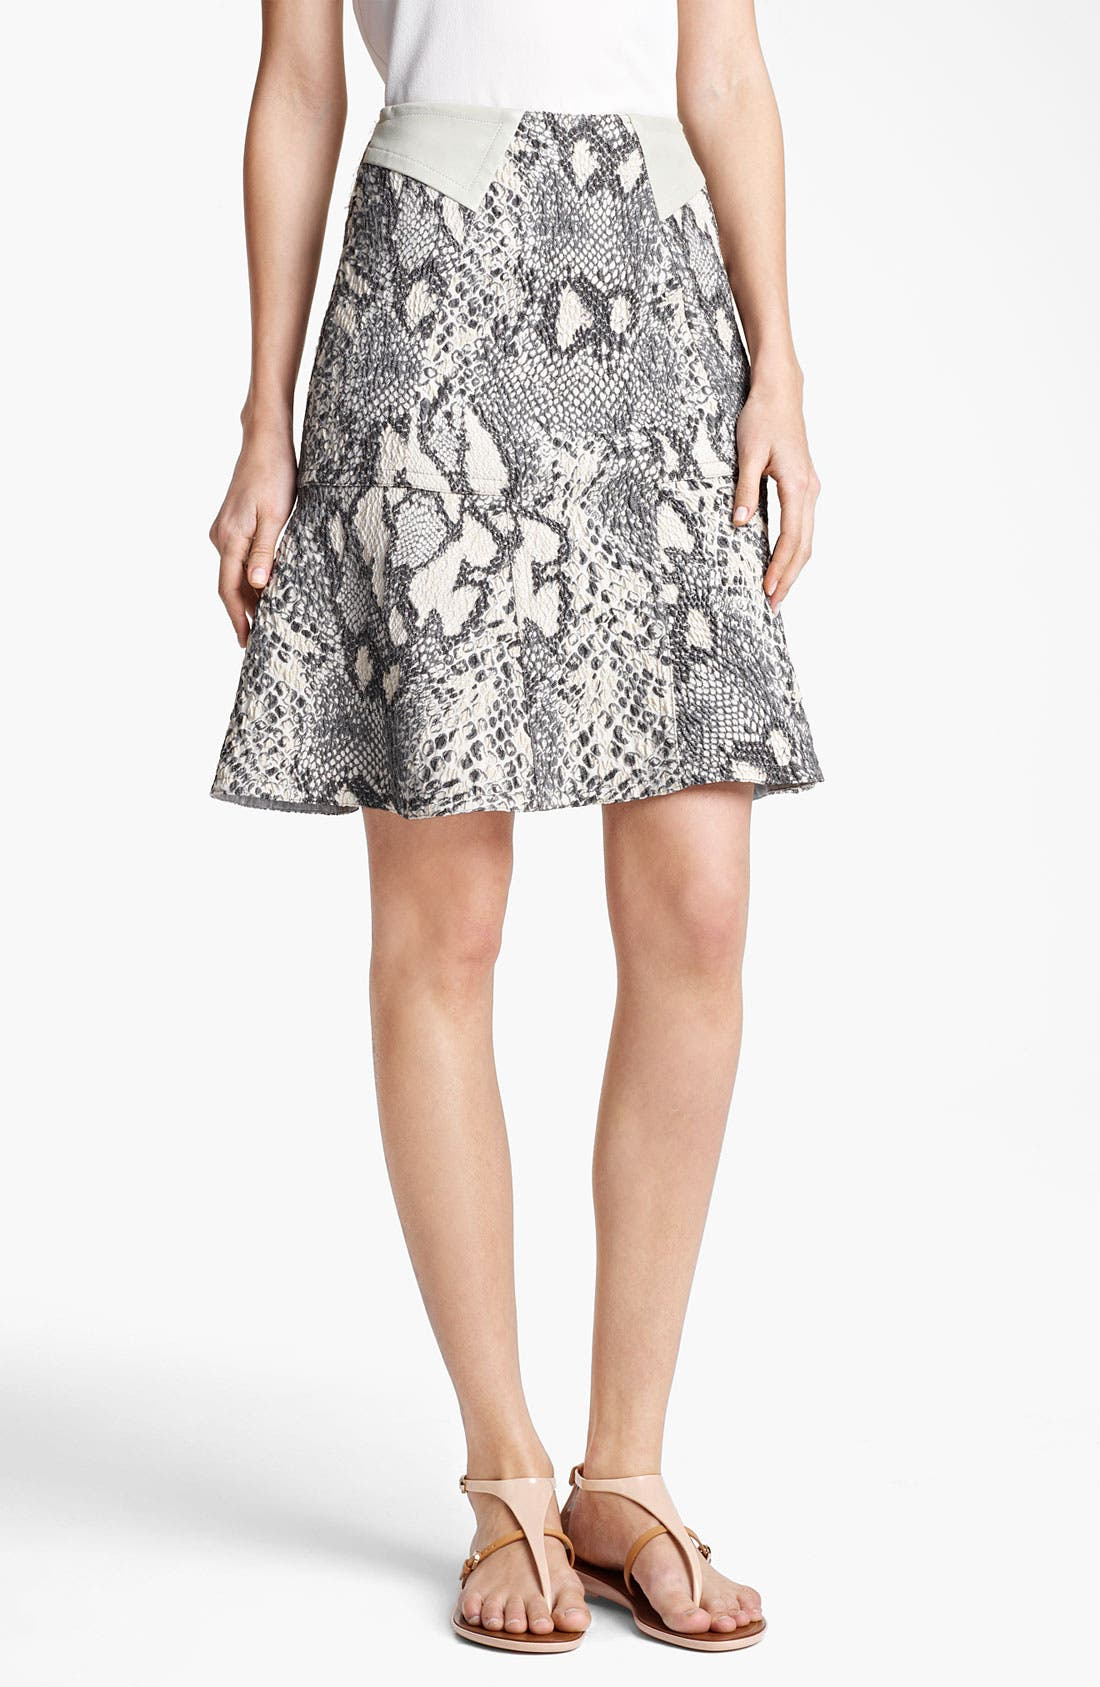 Alternate Image 1 Selected - Yigal Azrouël Jacquard Skirt